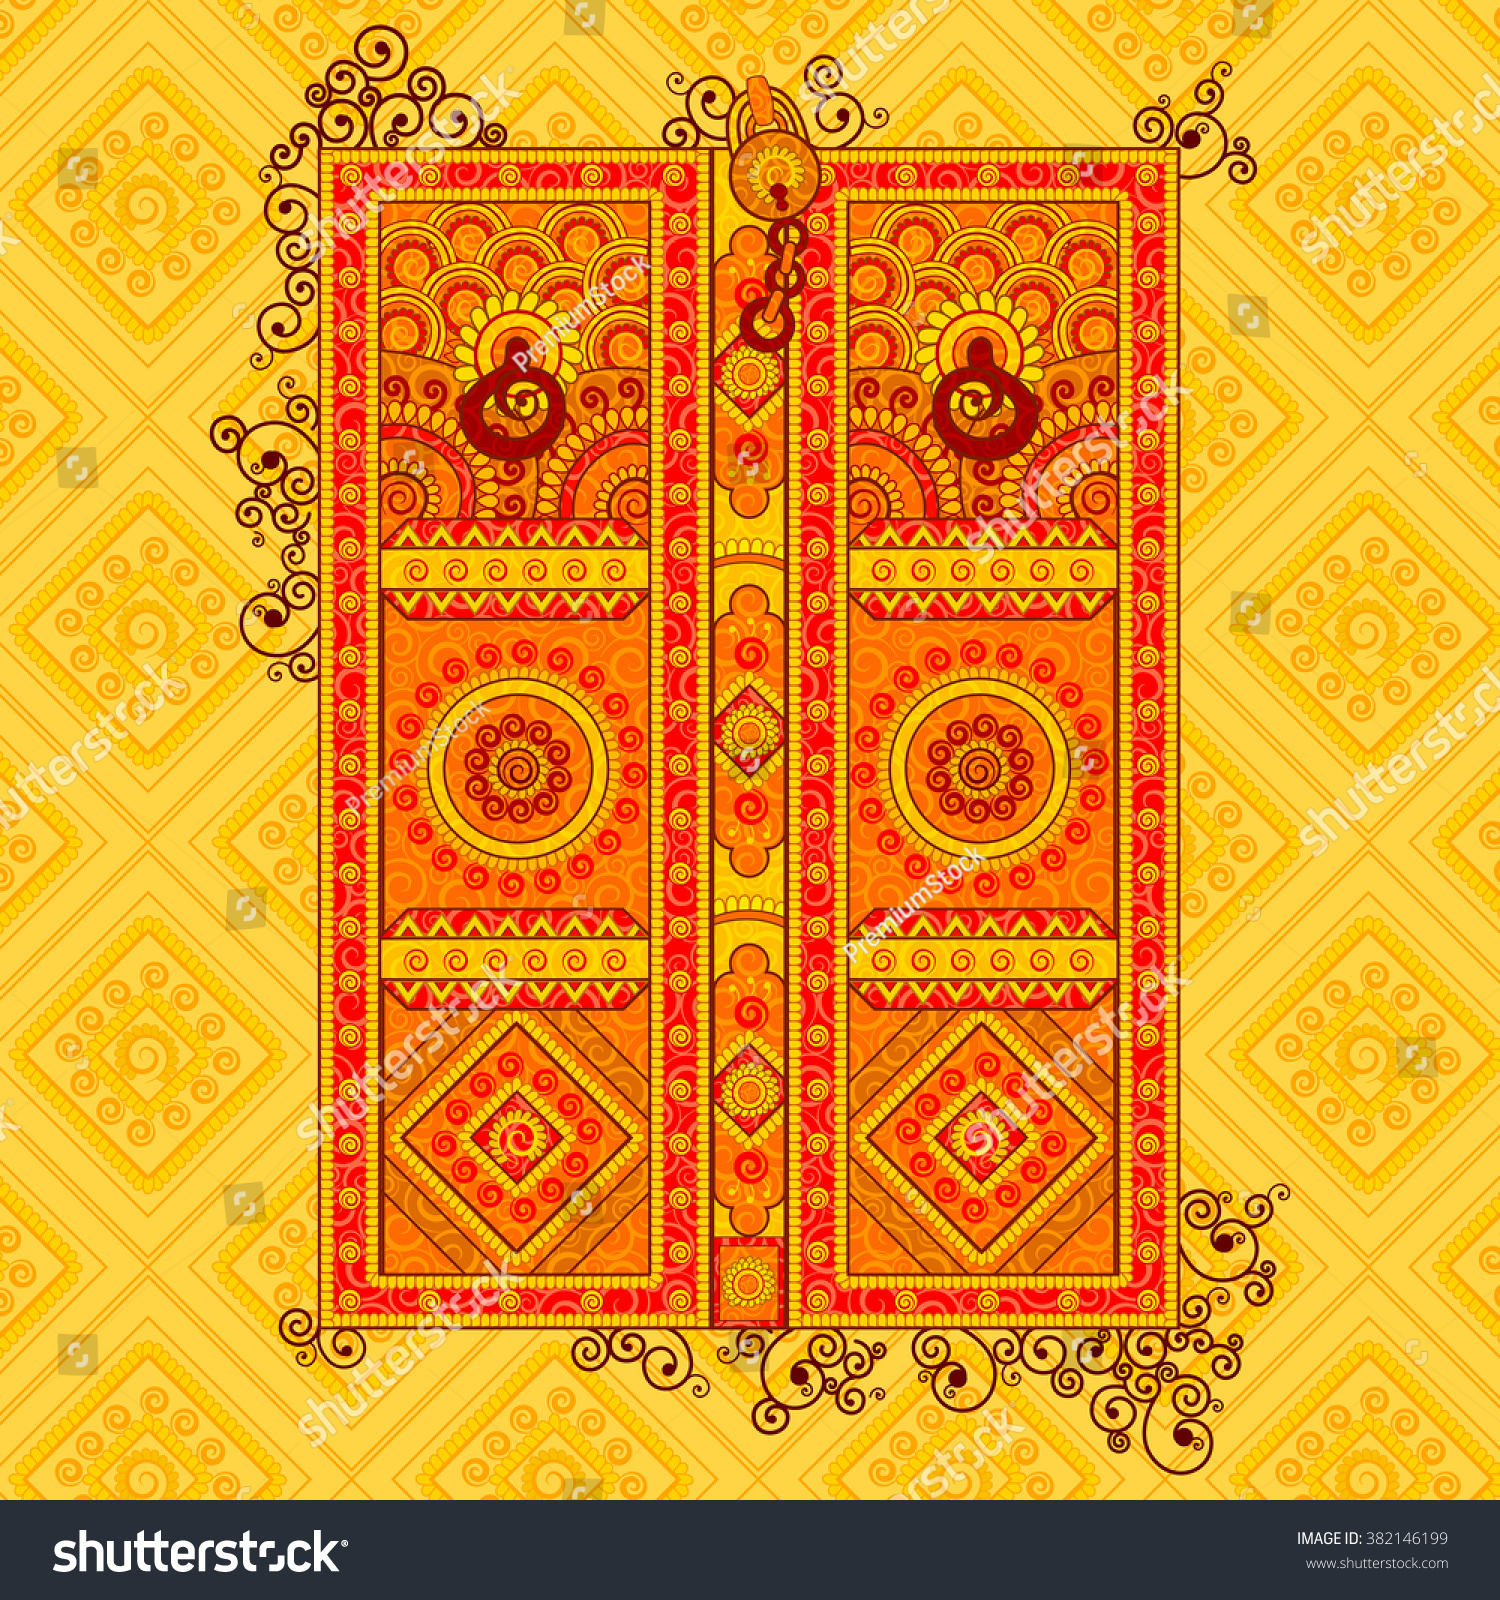 Rajasthan Royals Theme Song Free Download: Vector Design Traditional Door Indian Art Stock Vector